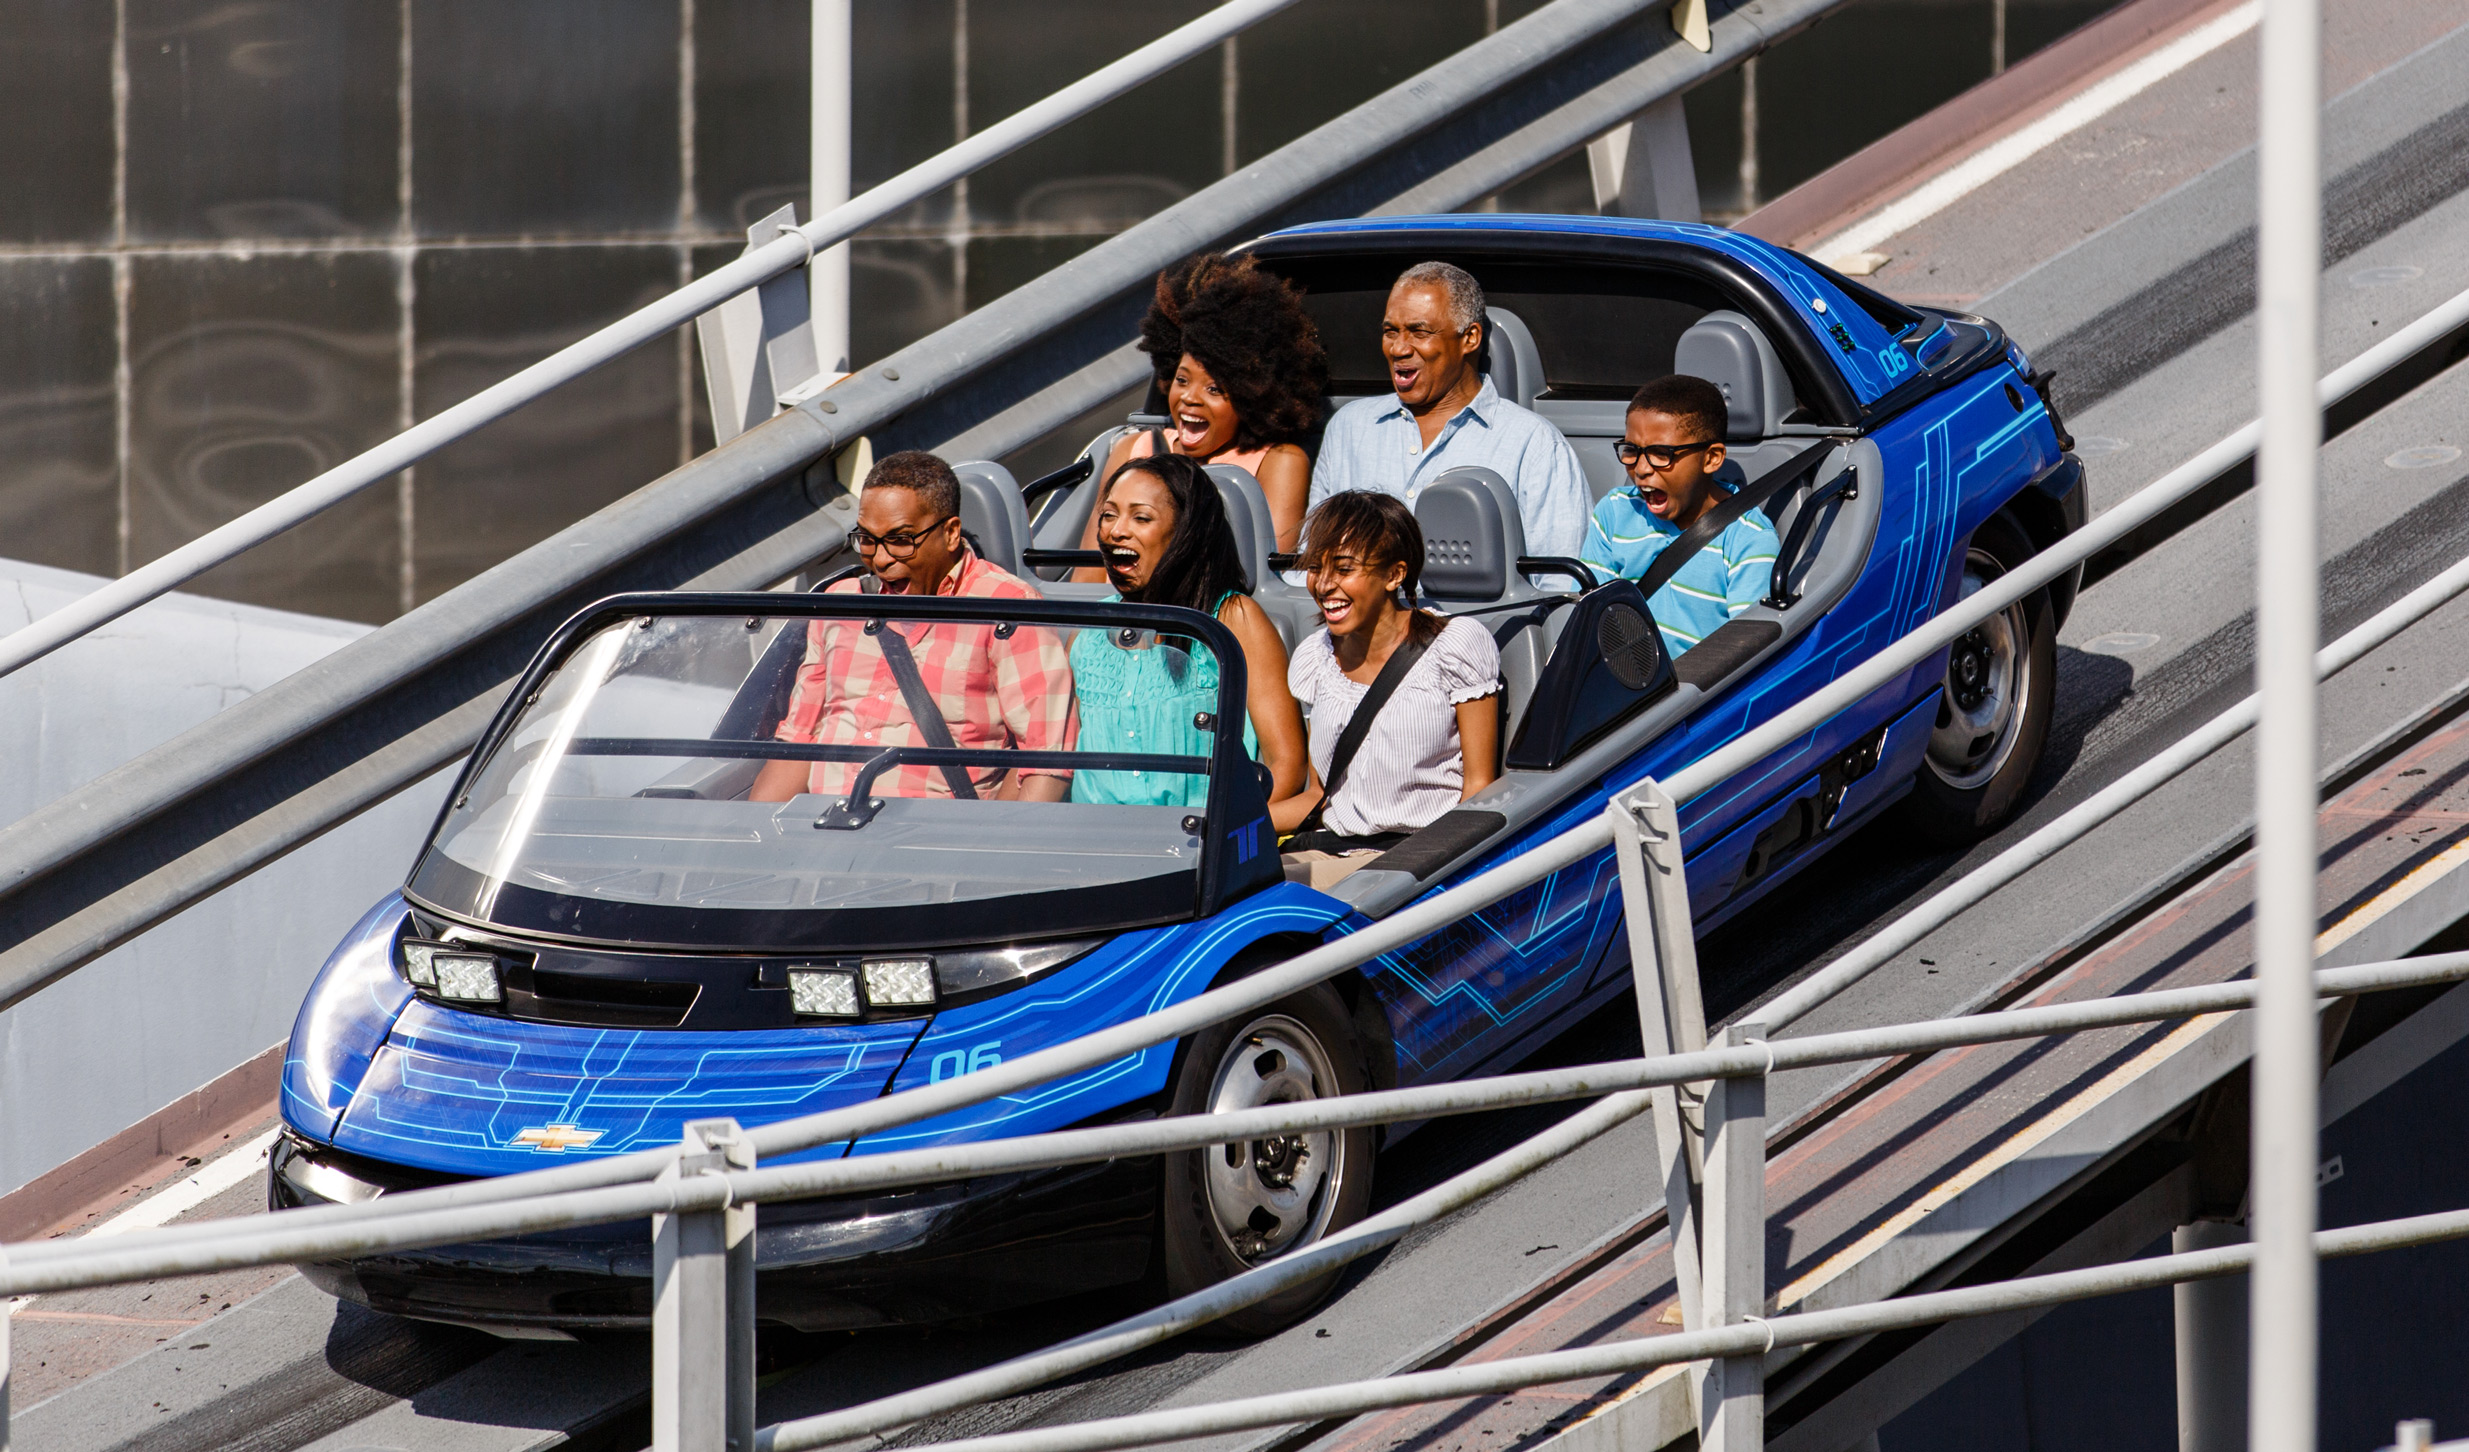 Guests of ages enjoy a thrilling ride on Test Track Presented by Chevrolet in Future World at Epcot